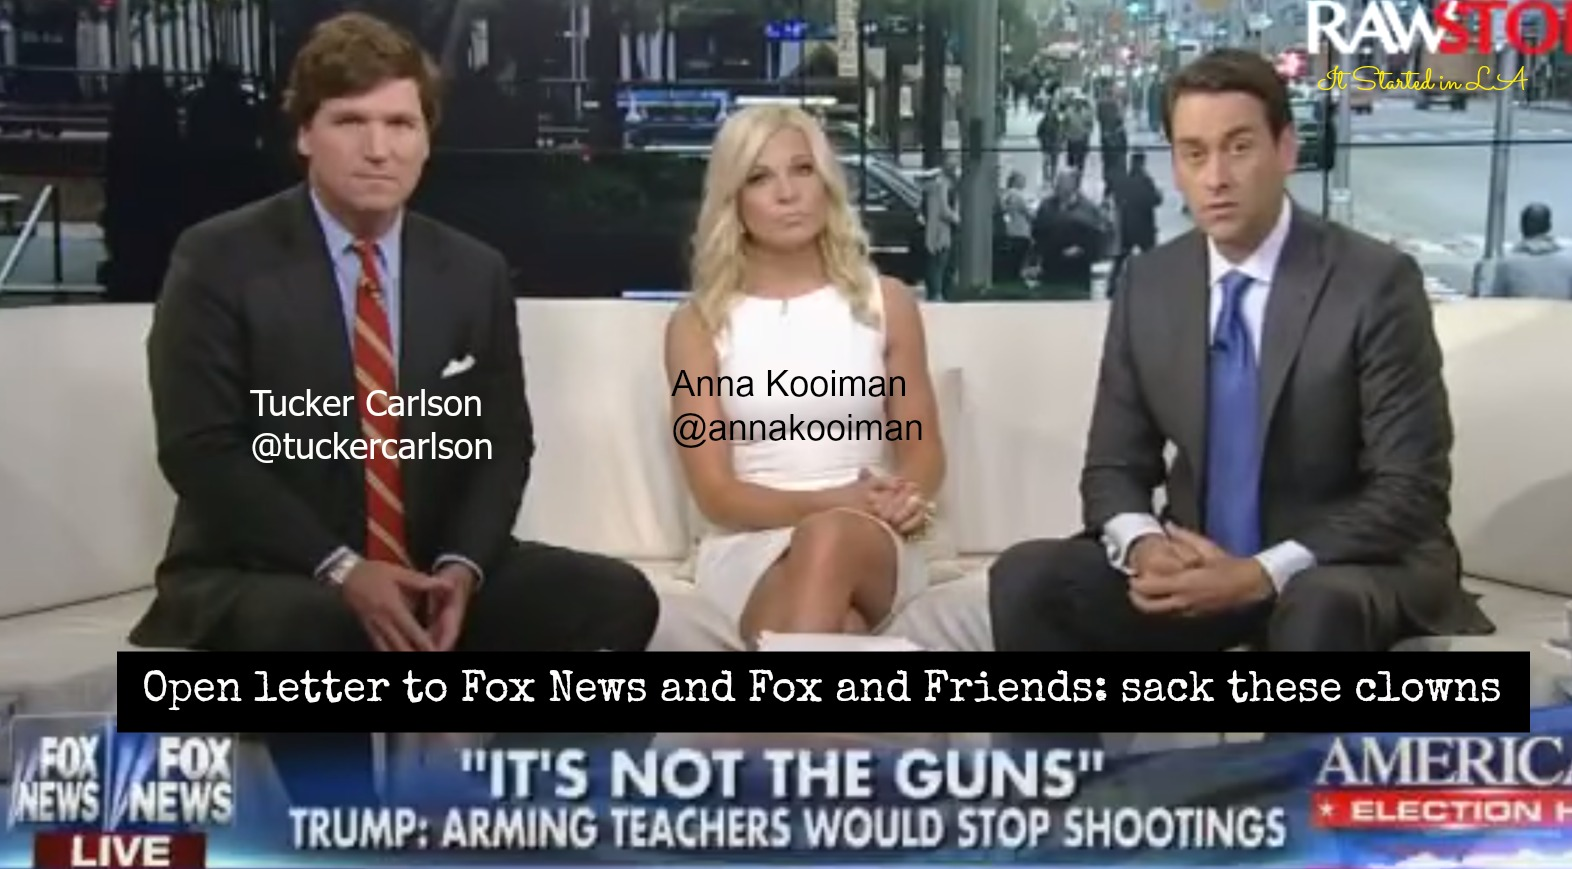 Fox & Friends presenters opinion on gun control